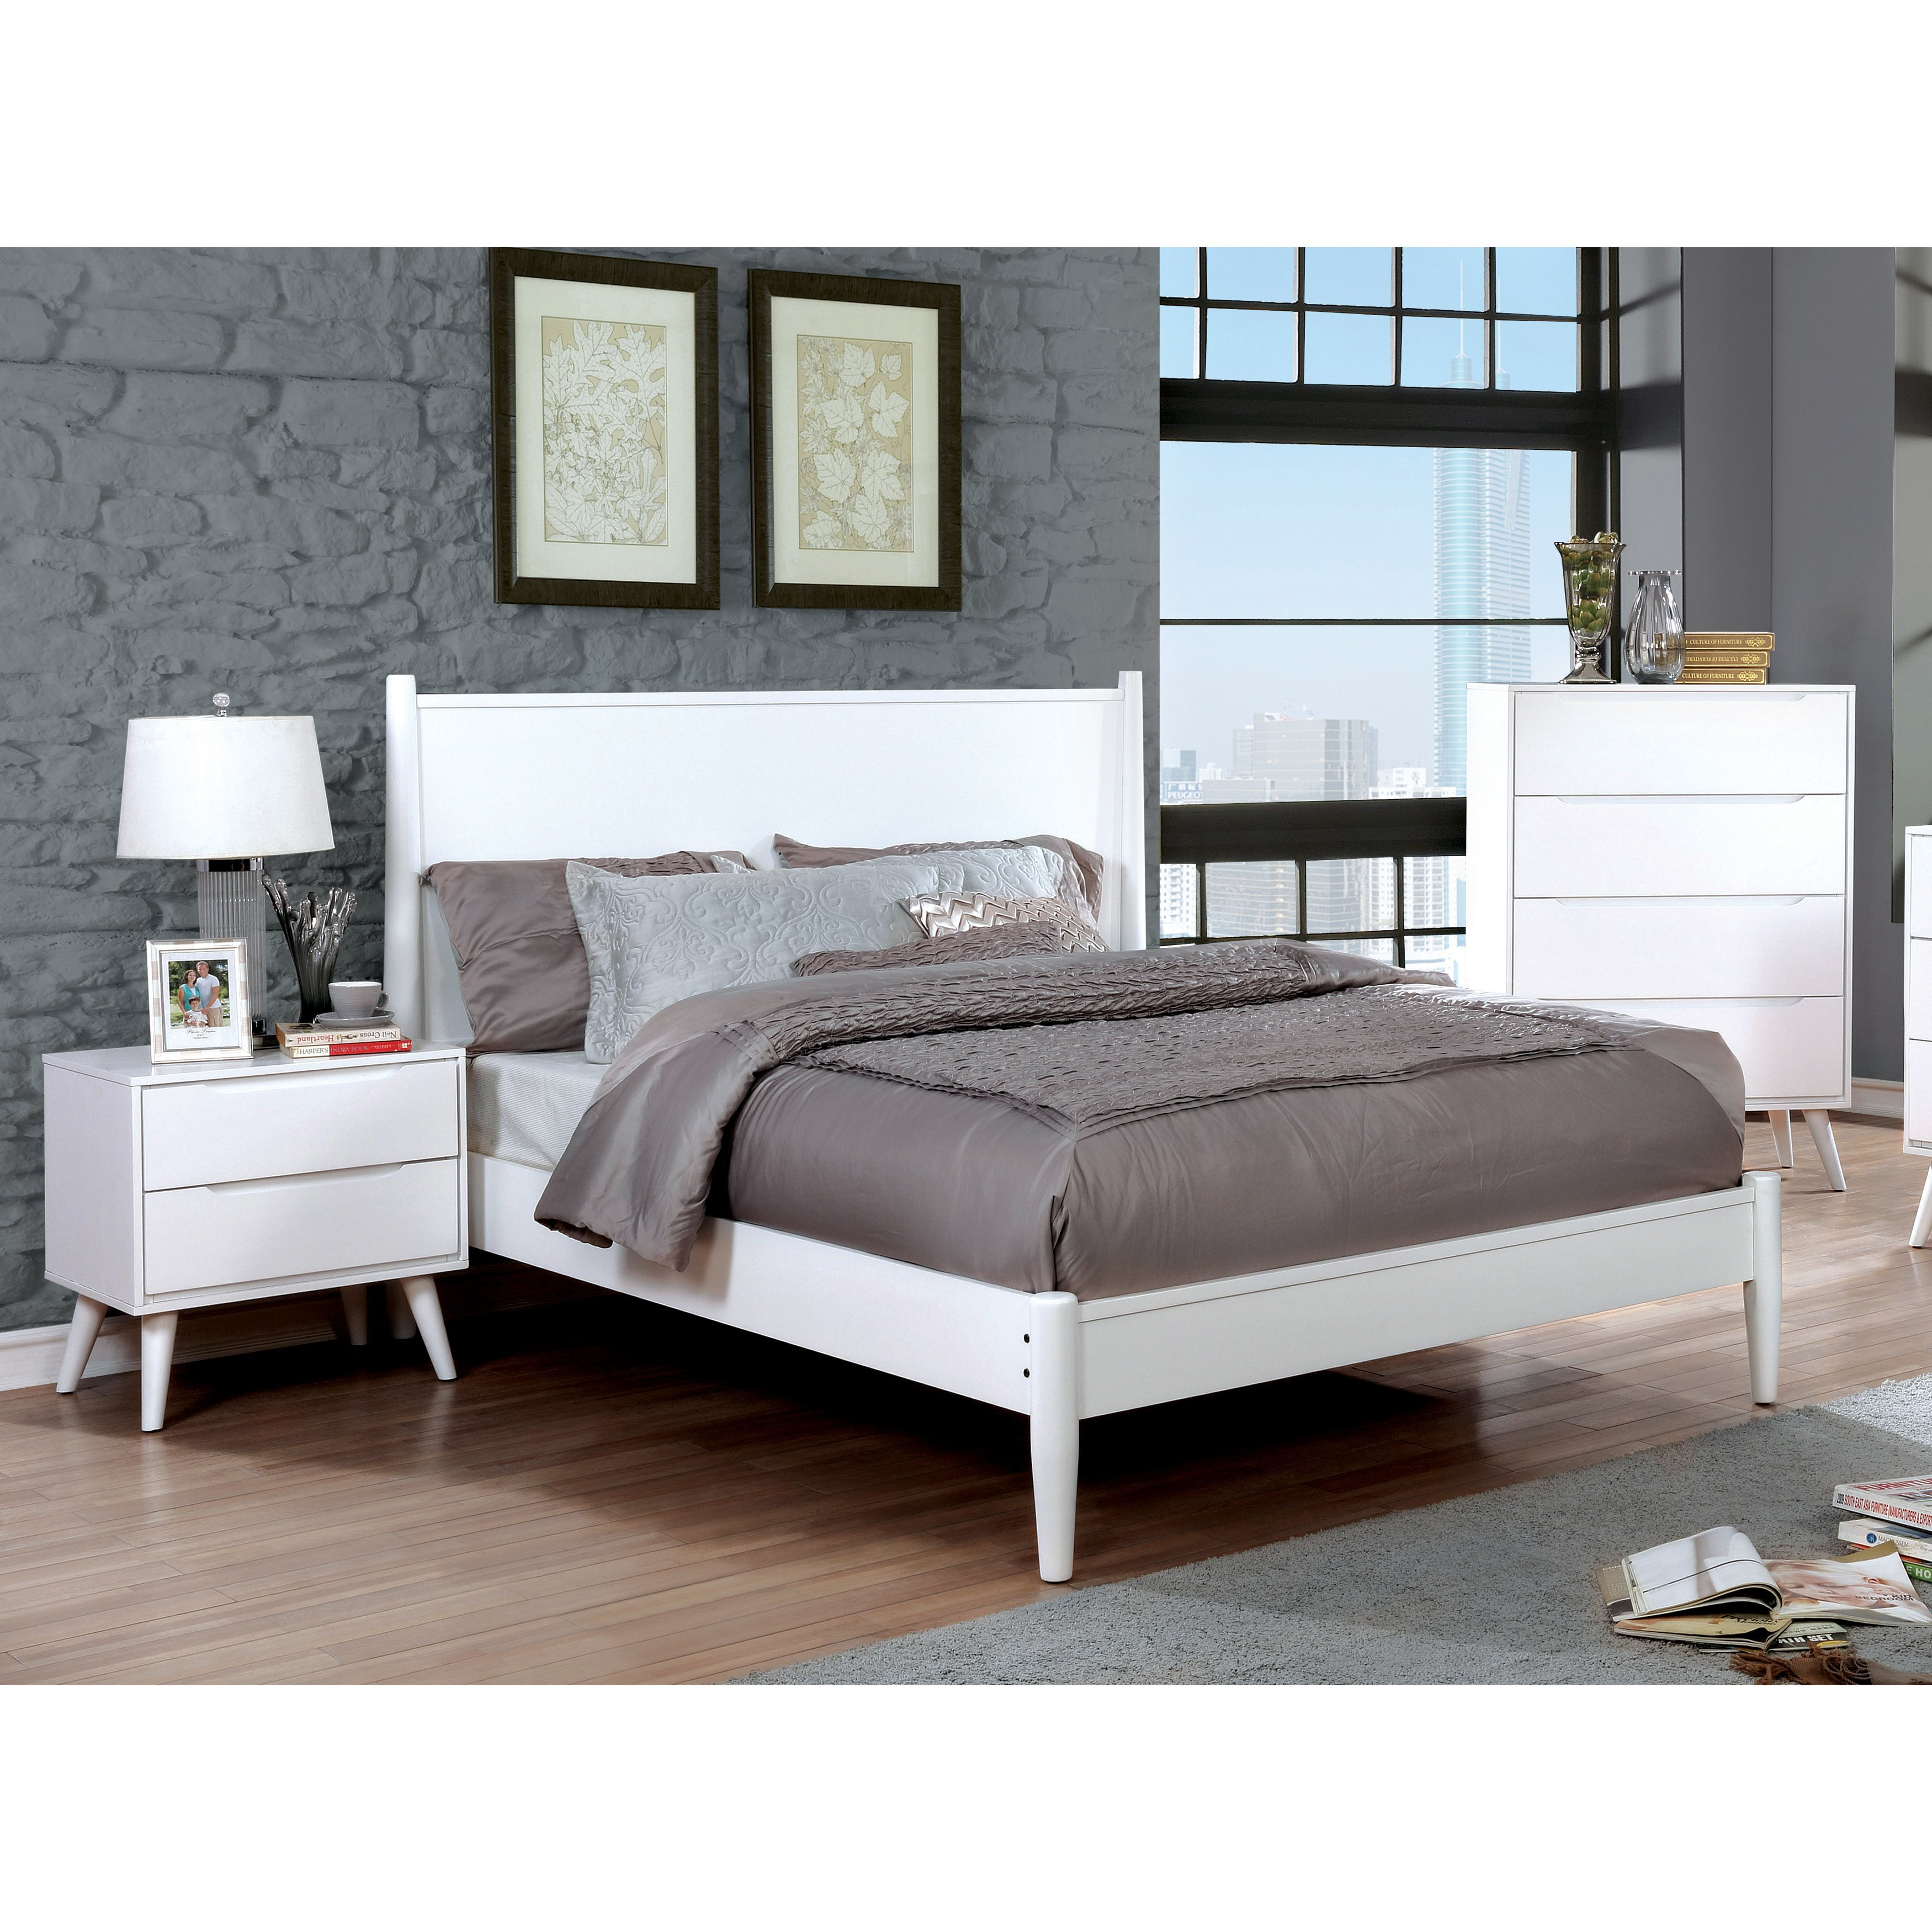 Shop Carson Carrington Bodo White Mid Century Modern 3 Piece Bedroom with White Modern Bedroom Sets